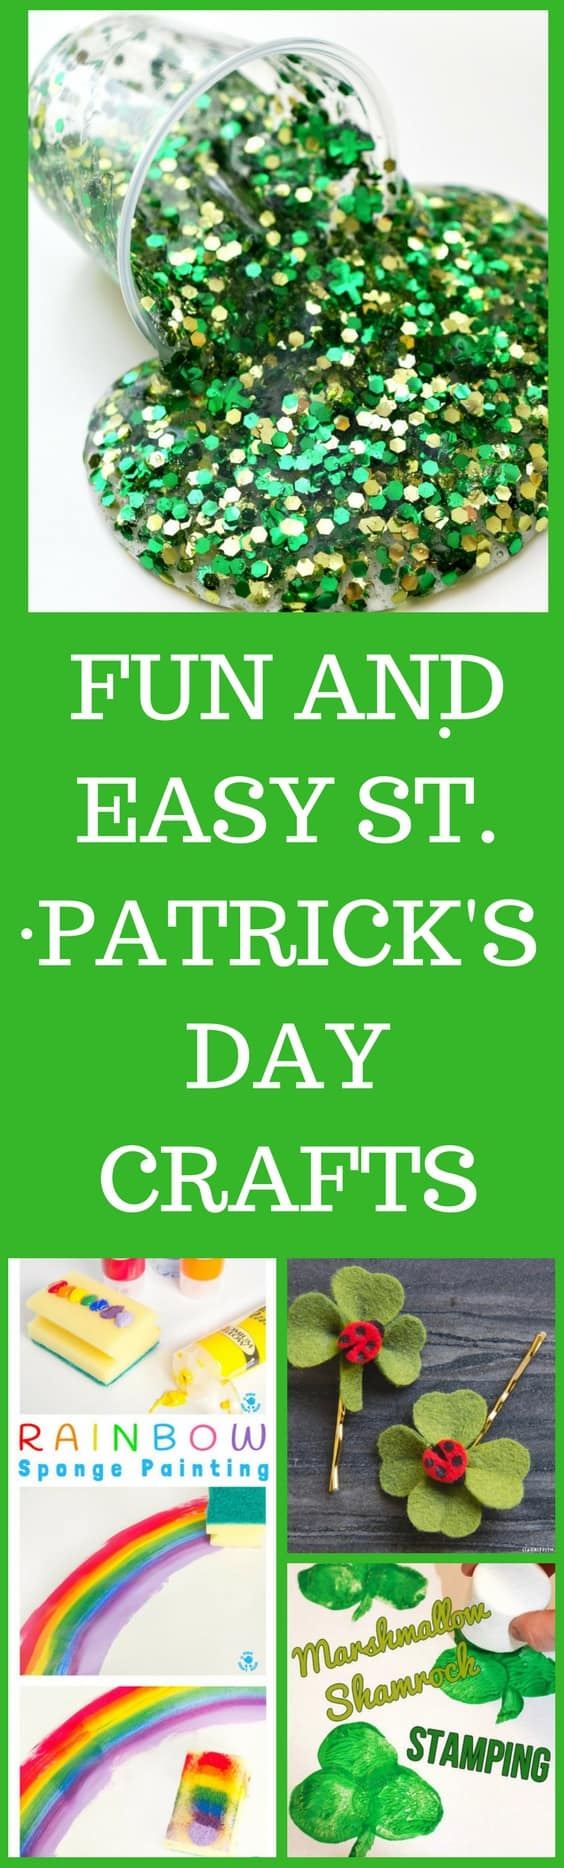 Easy and Fun St. Patrick's Day Crafts